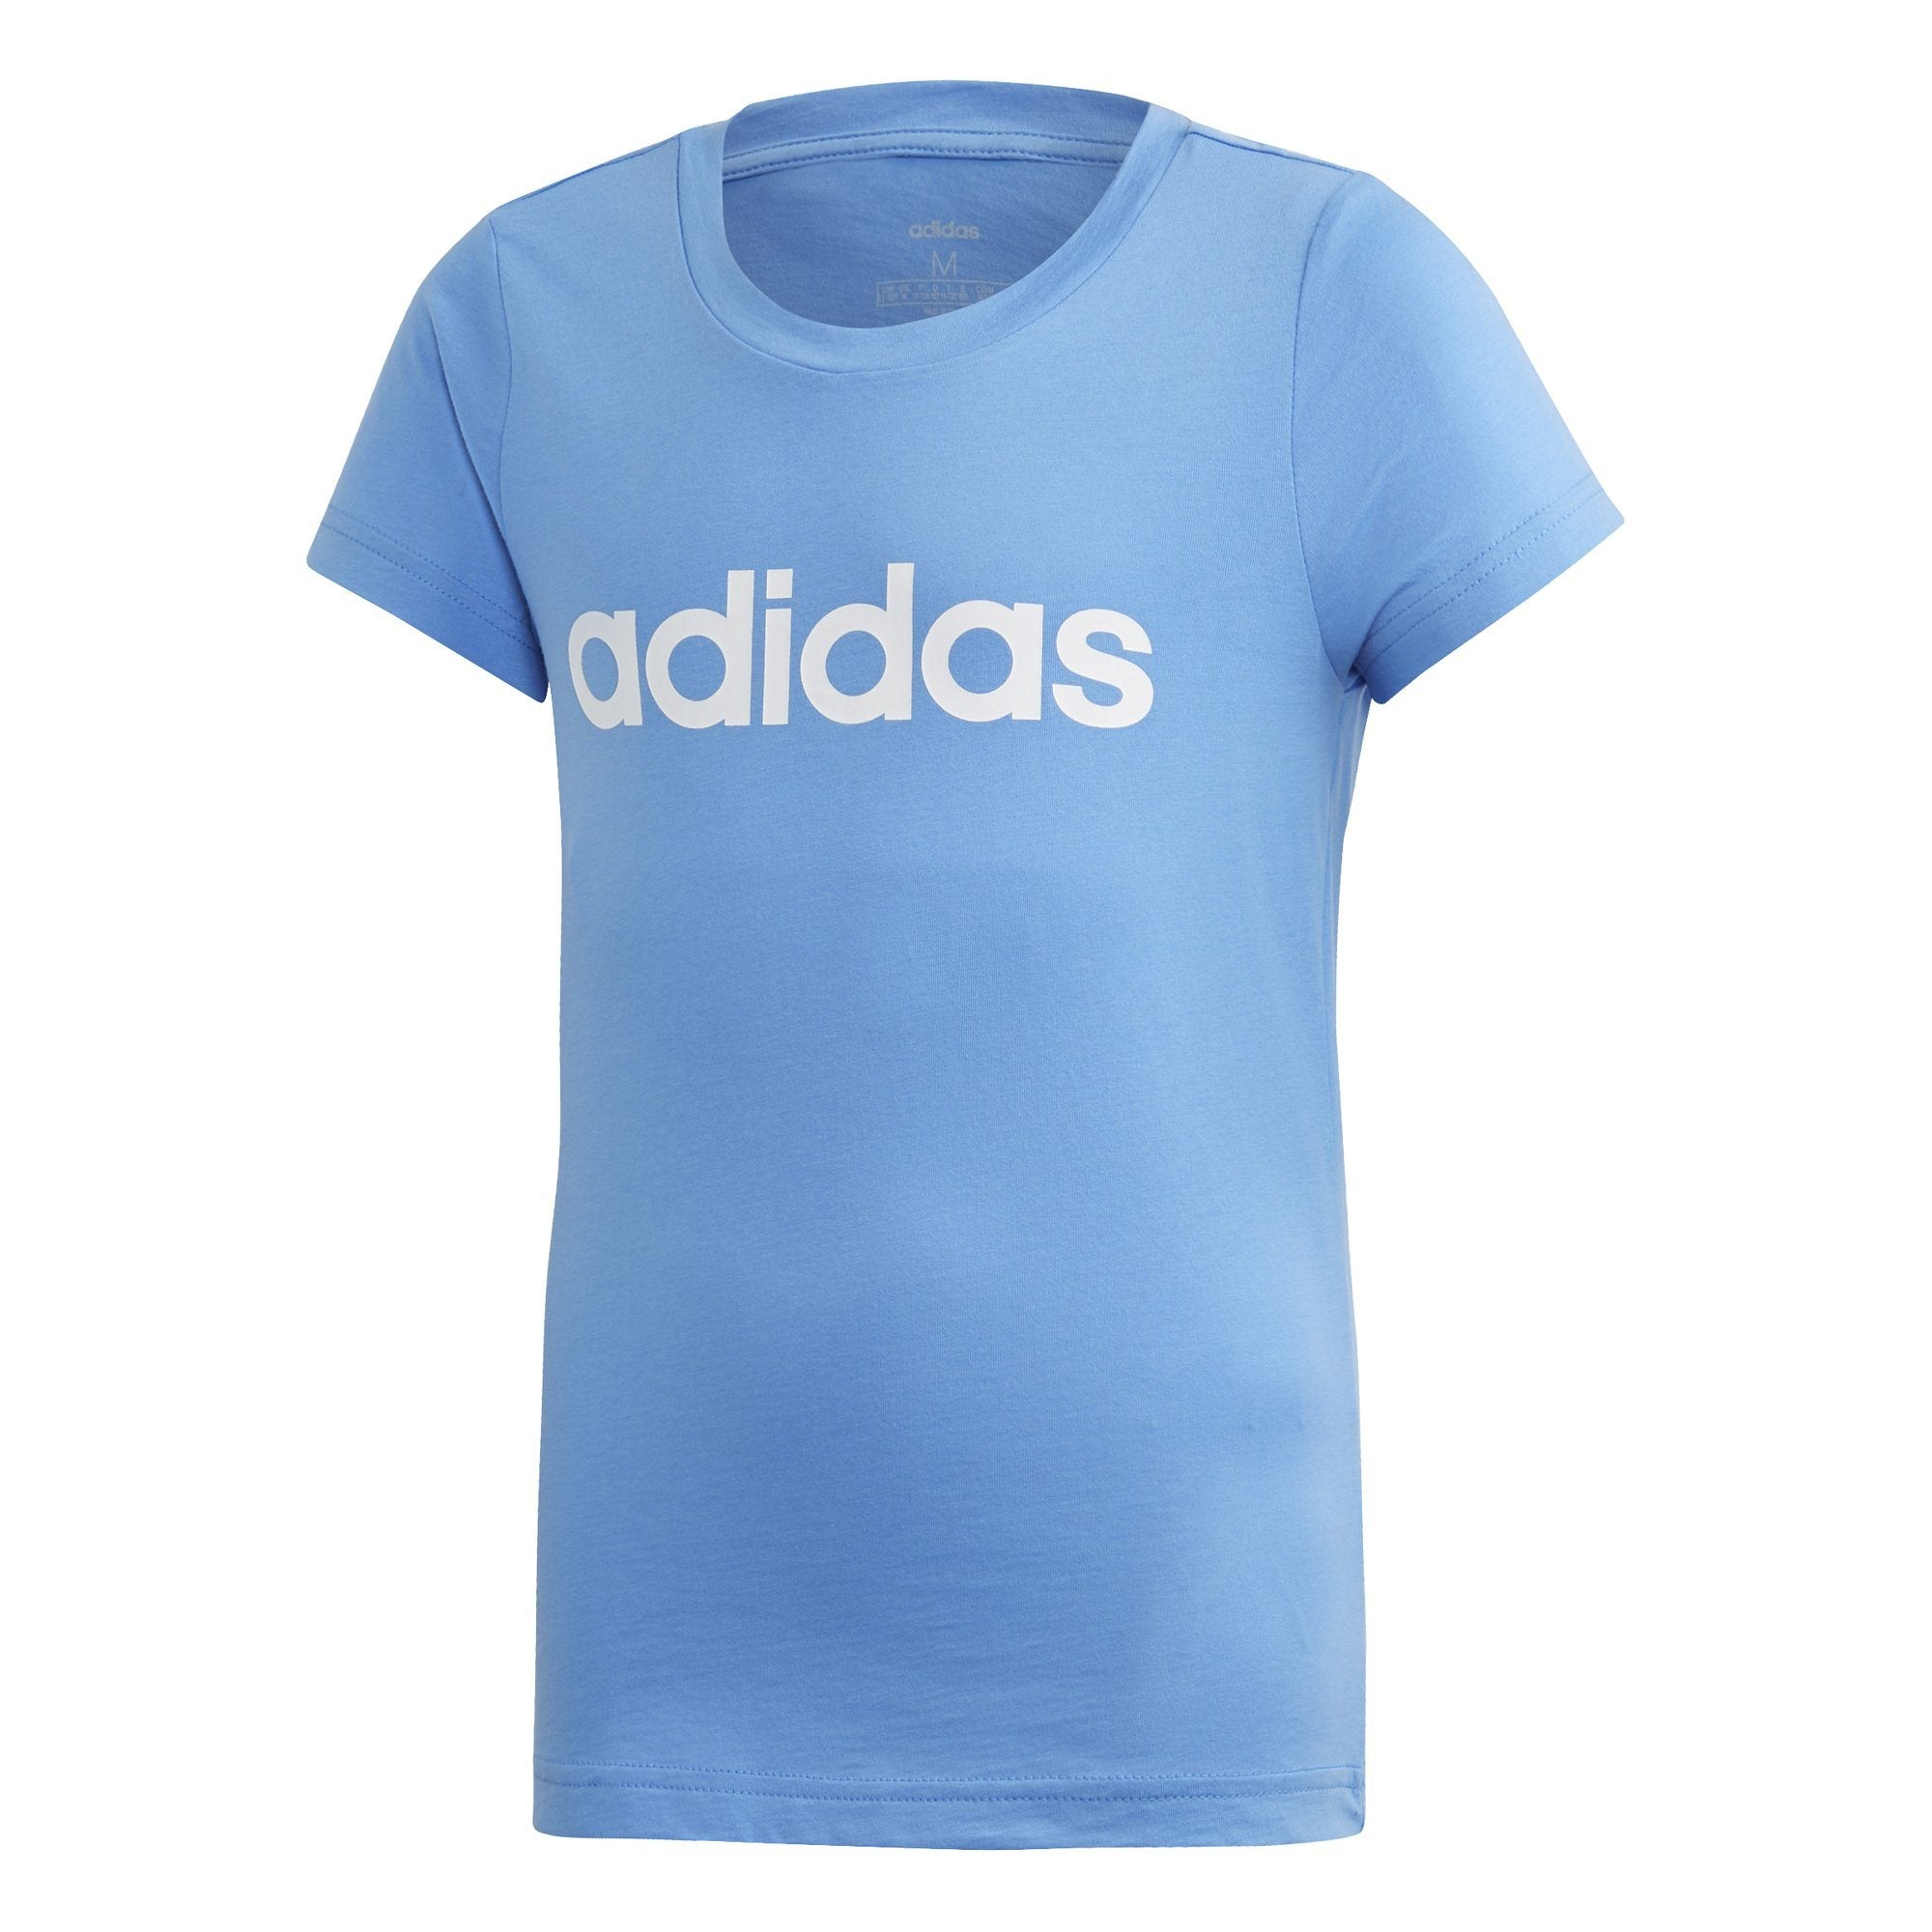 Adidas Girls Essentials Linear Tee - real blue/white SP-APPARELTEES-KIDS Adidas